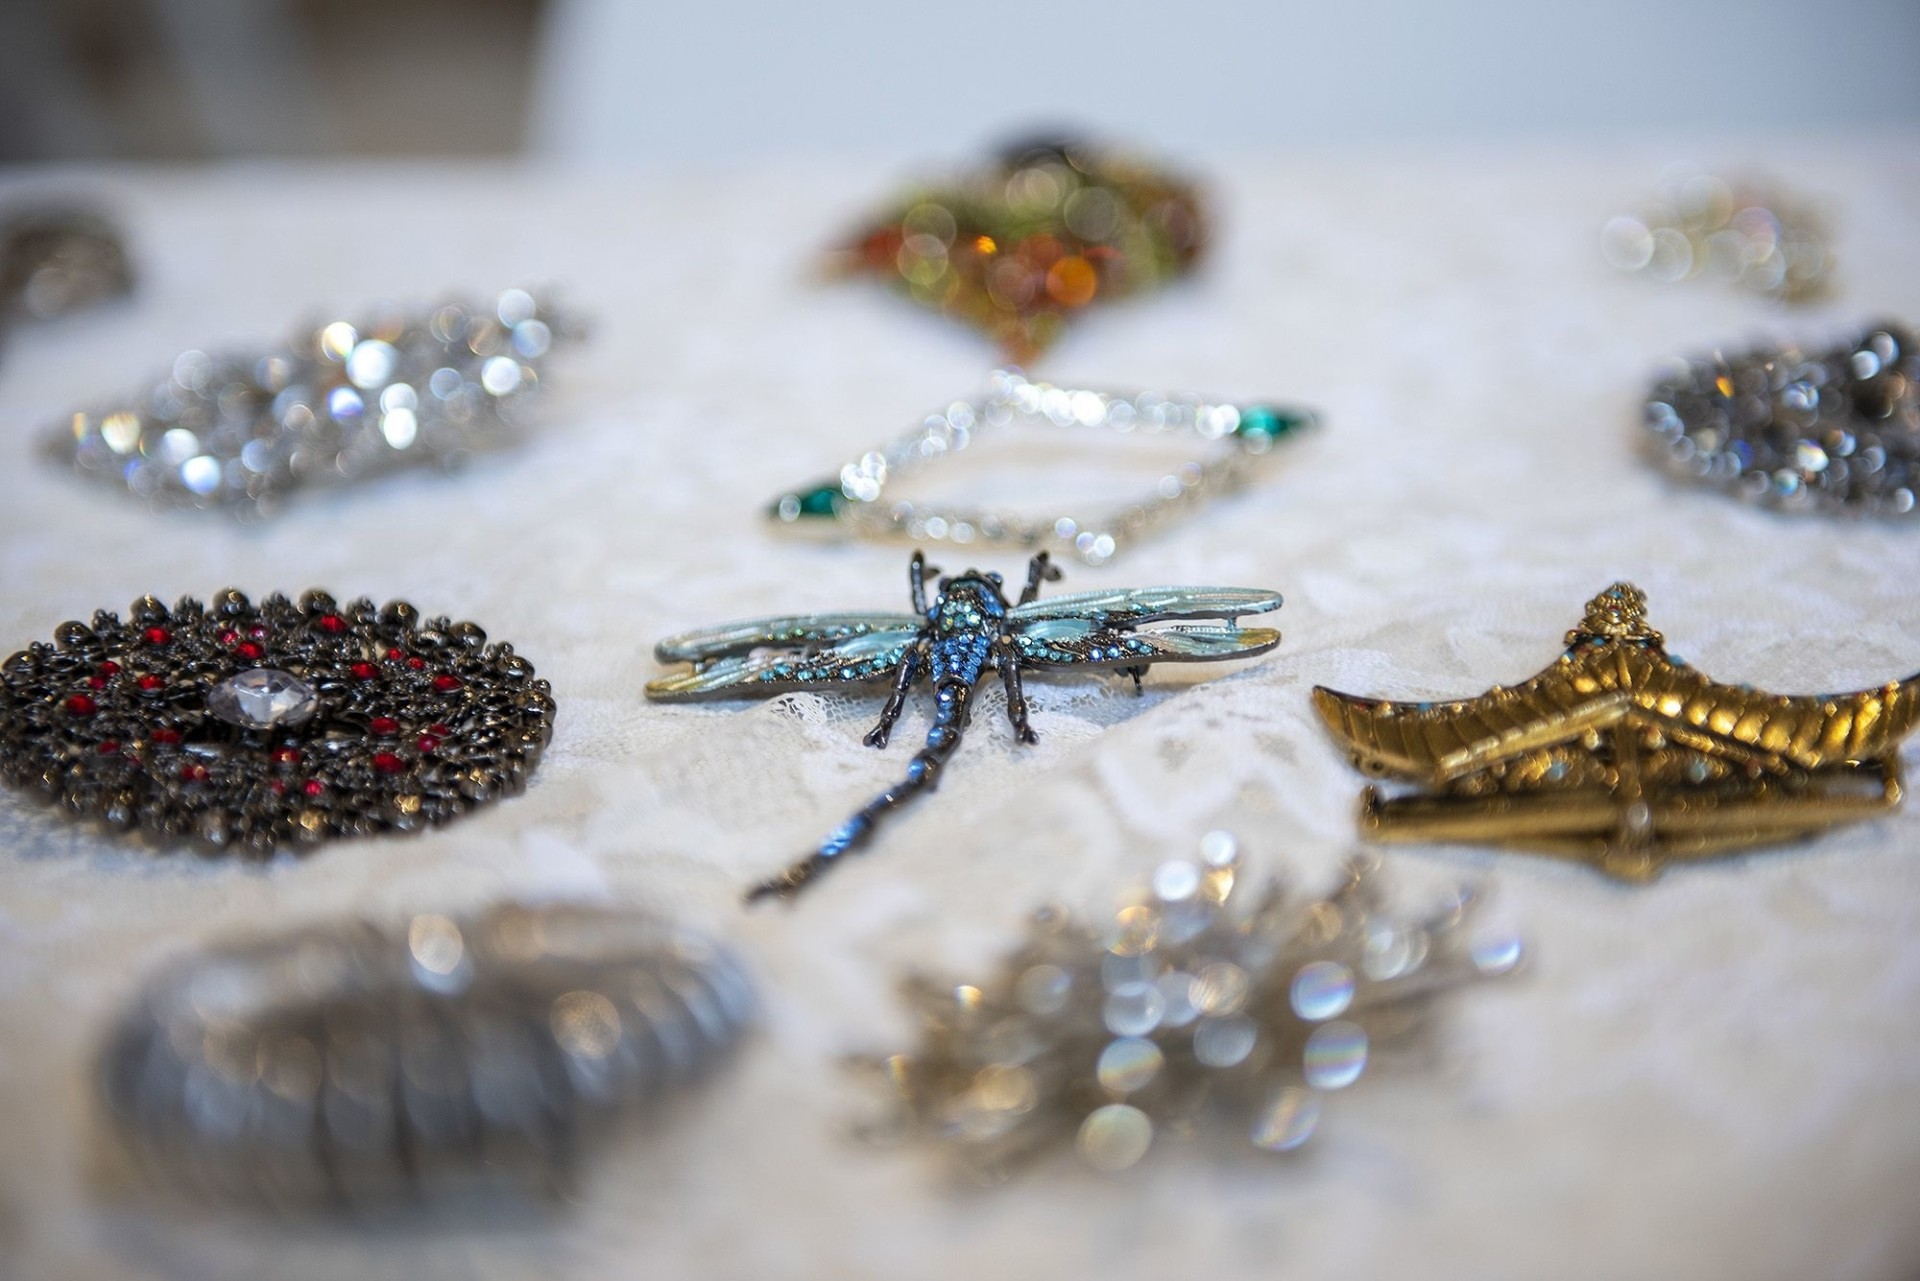 A small part of Caruso's brooch collection, which she showed at Frieda's restaurant recently.